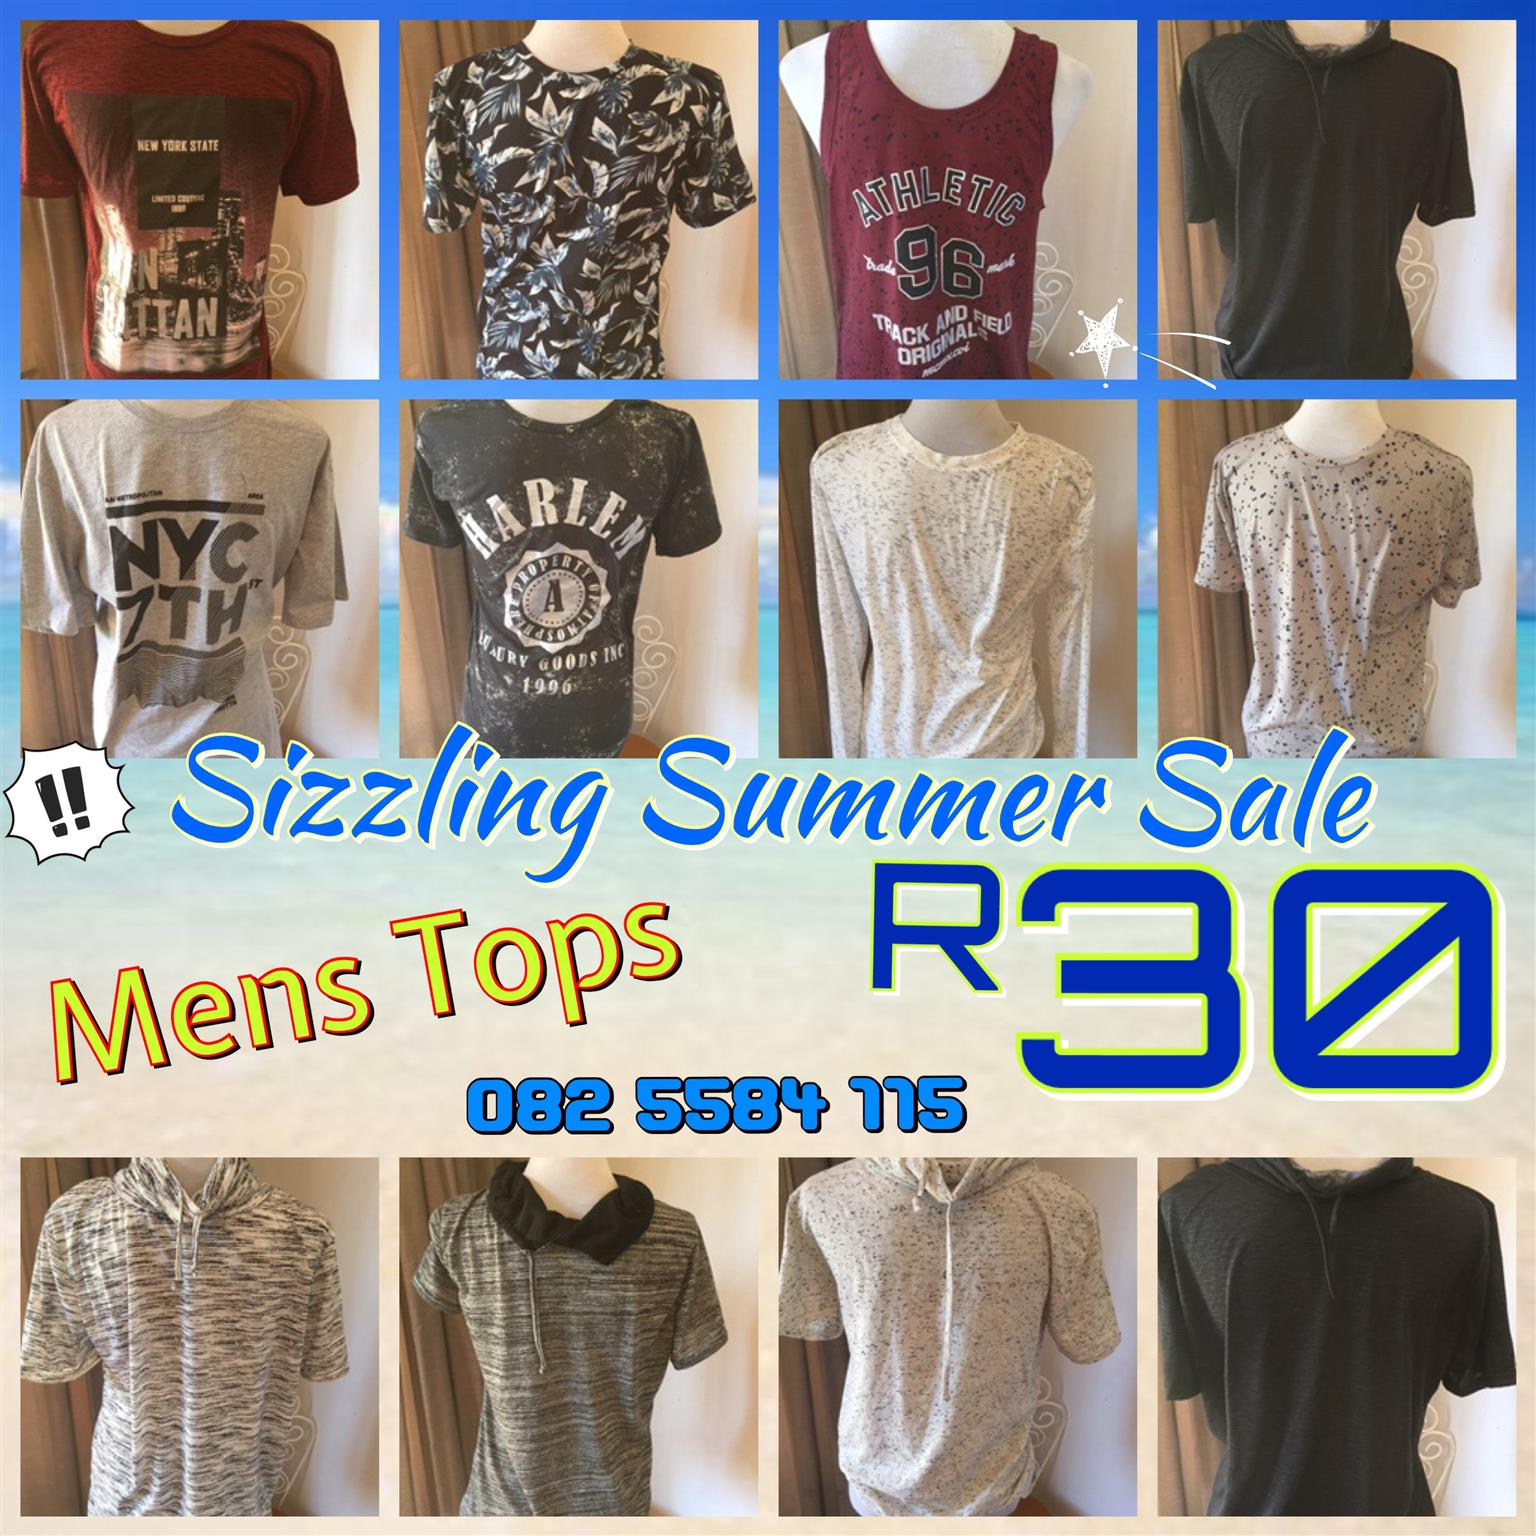 1c23aa44cc NEW Ladies, Kids, Men's Clothing On SALE